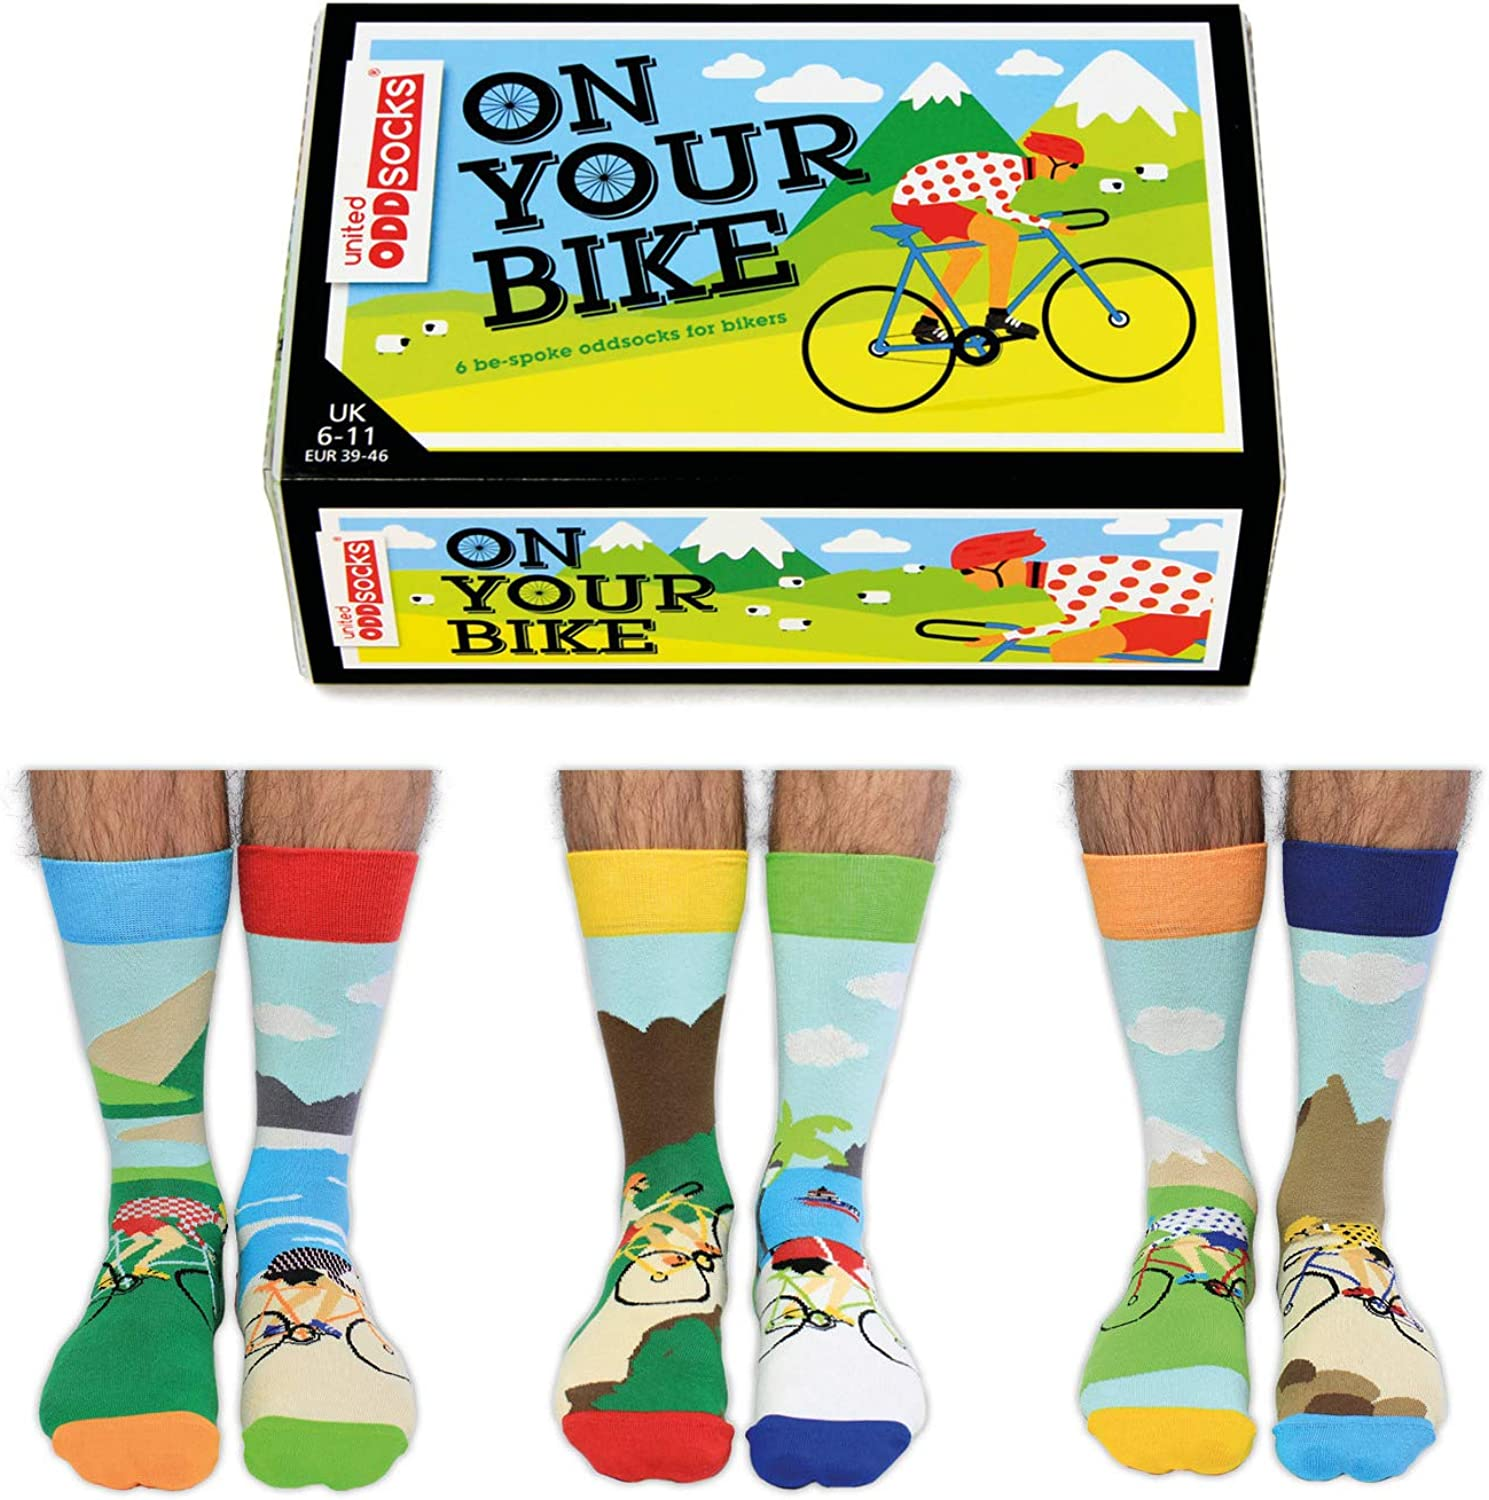 6 calcetines para hombre On Your Bike United Oddsocks